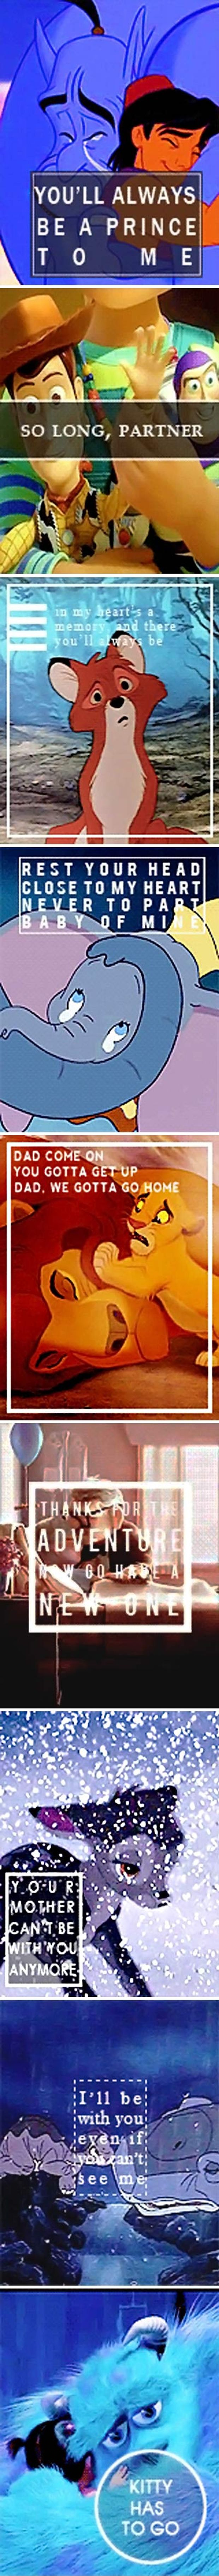 Excuse Me While I Go Cry Myself A River, Thanks Disney! – 9 Pics